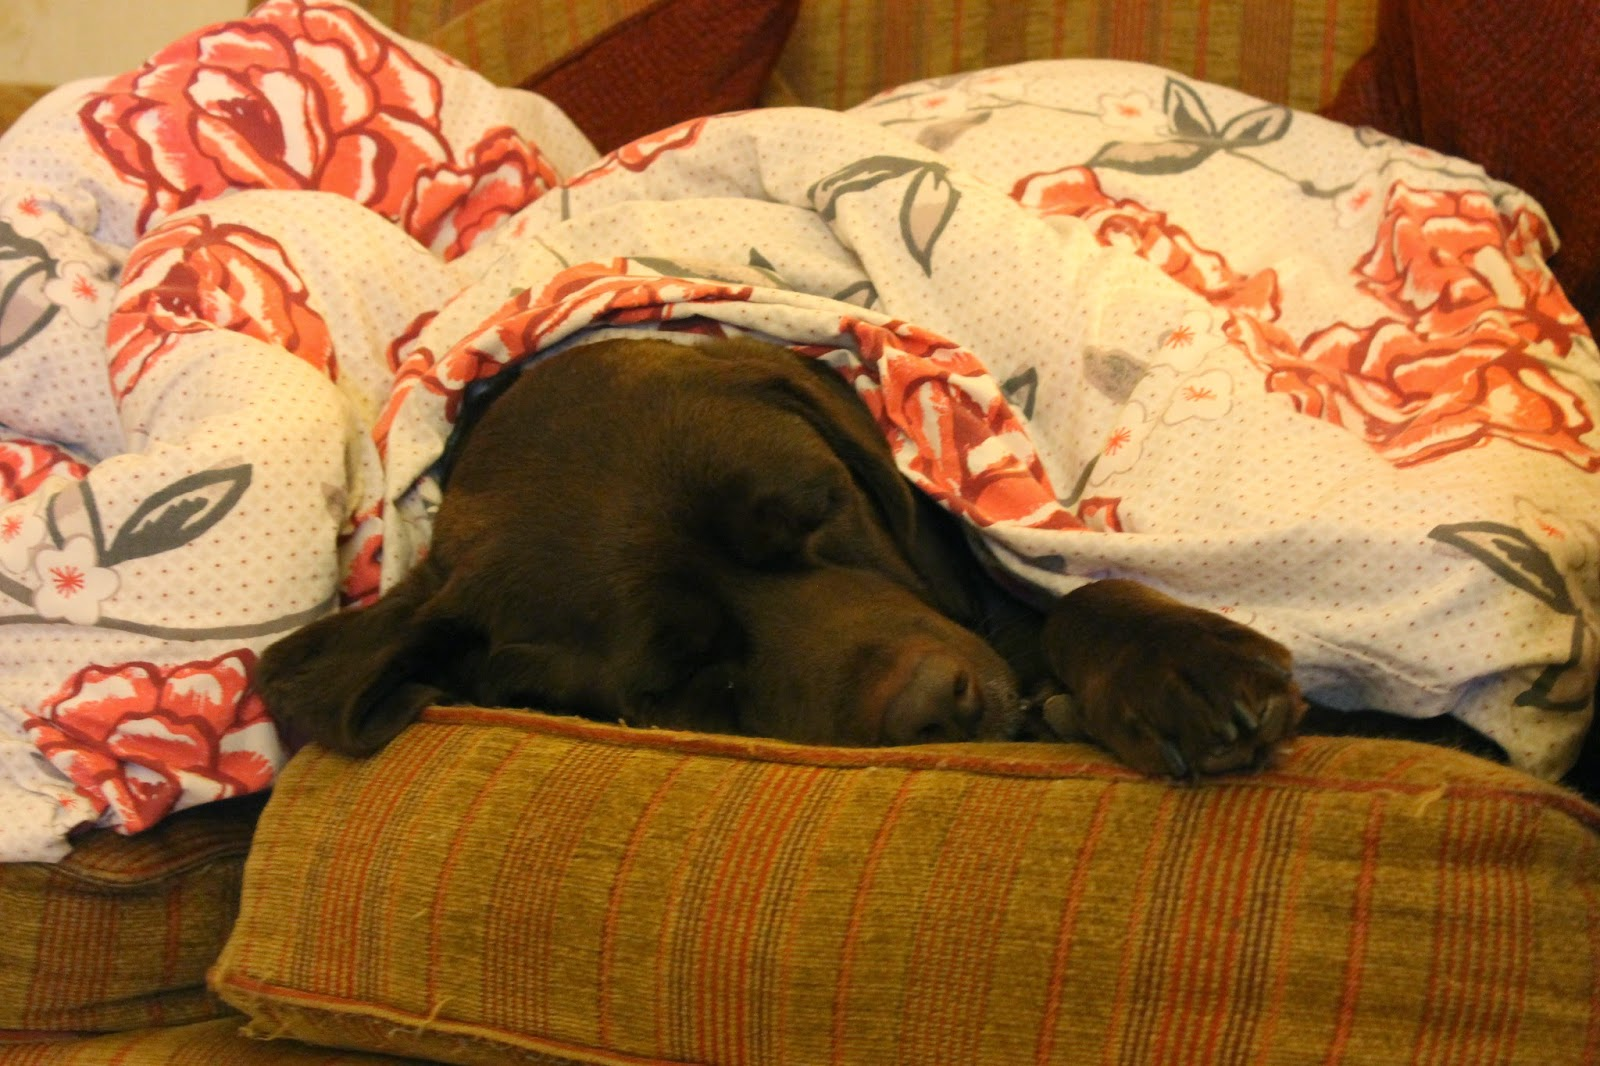 Chocolate Labrador under duvet